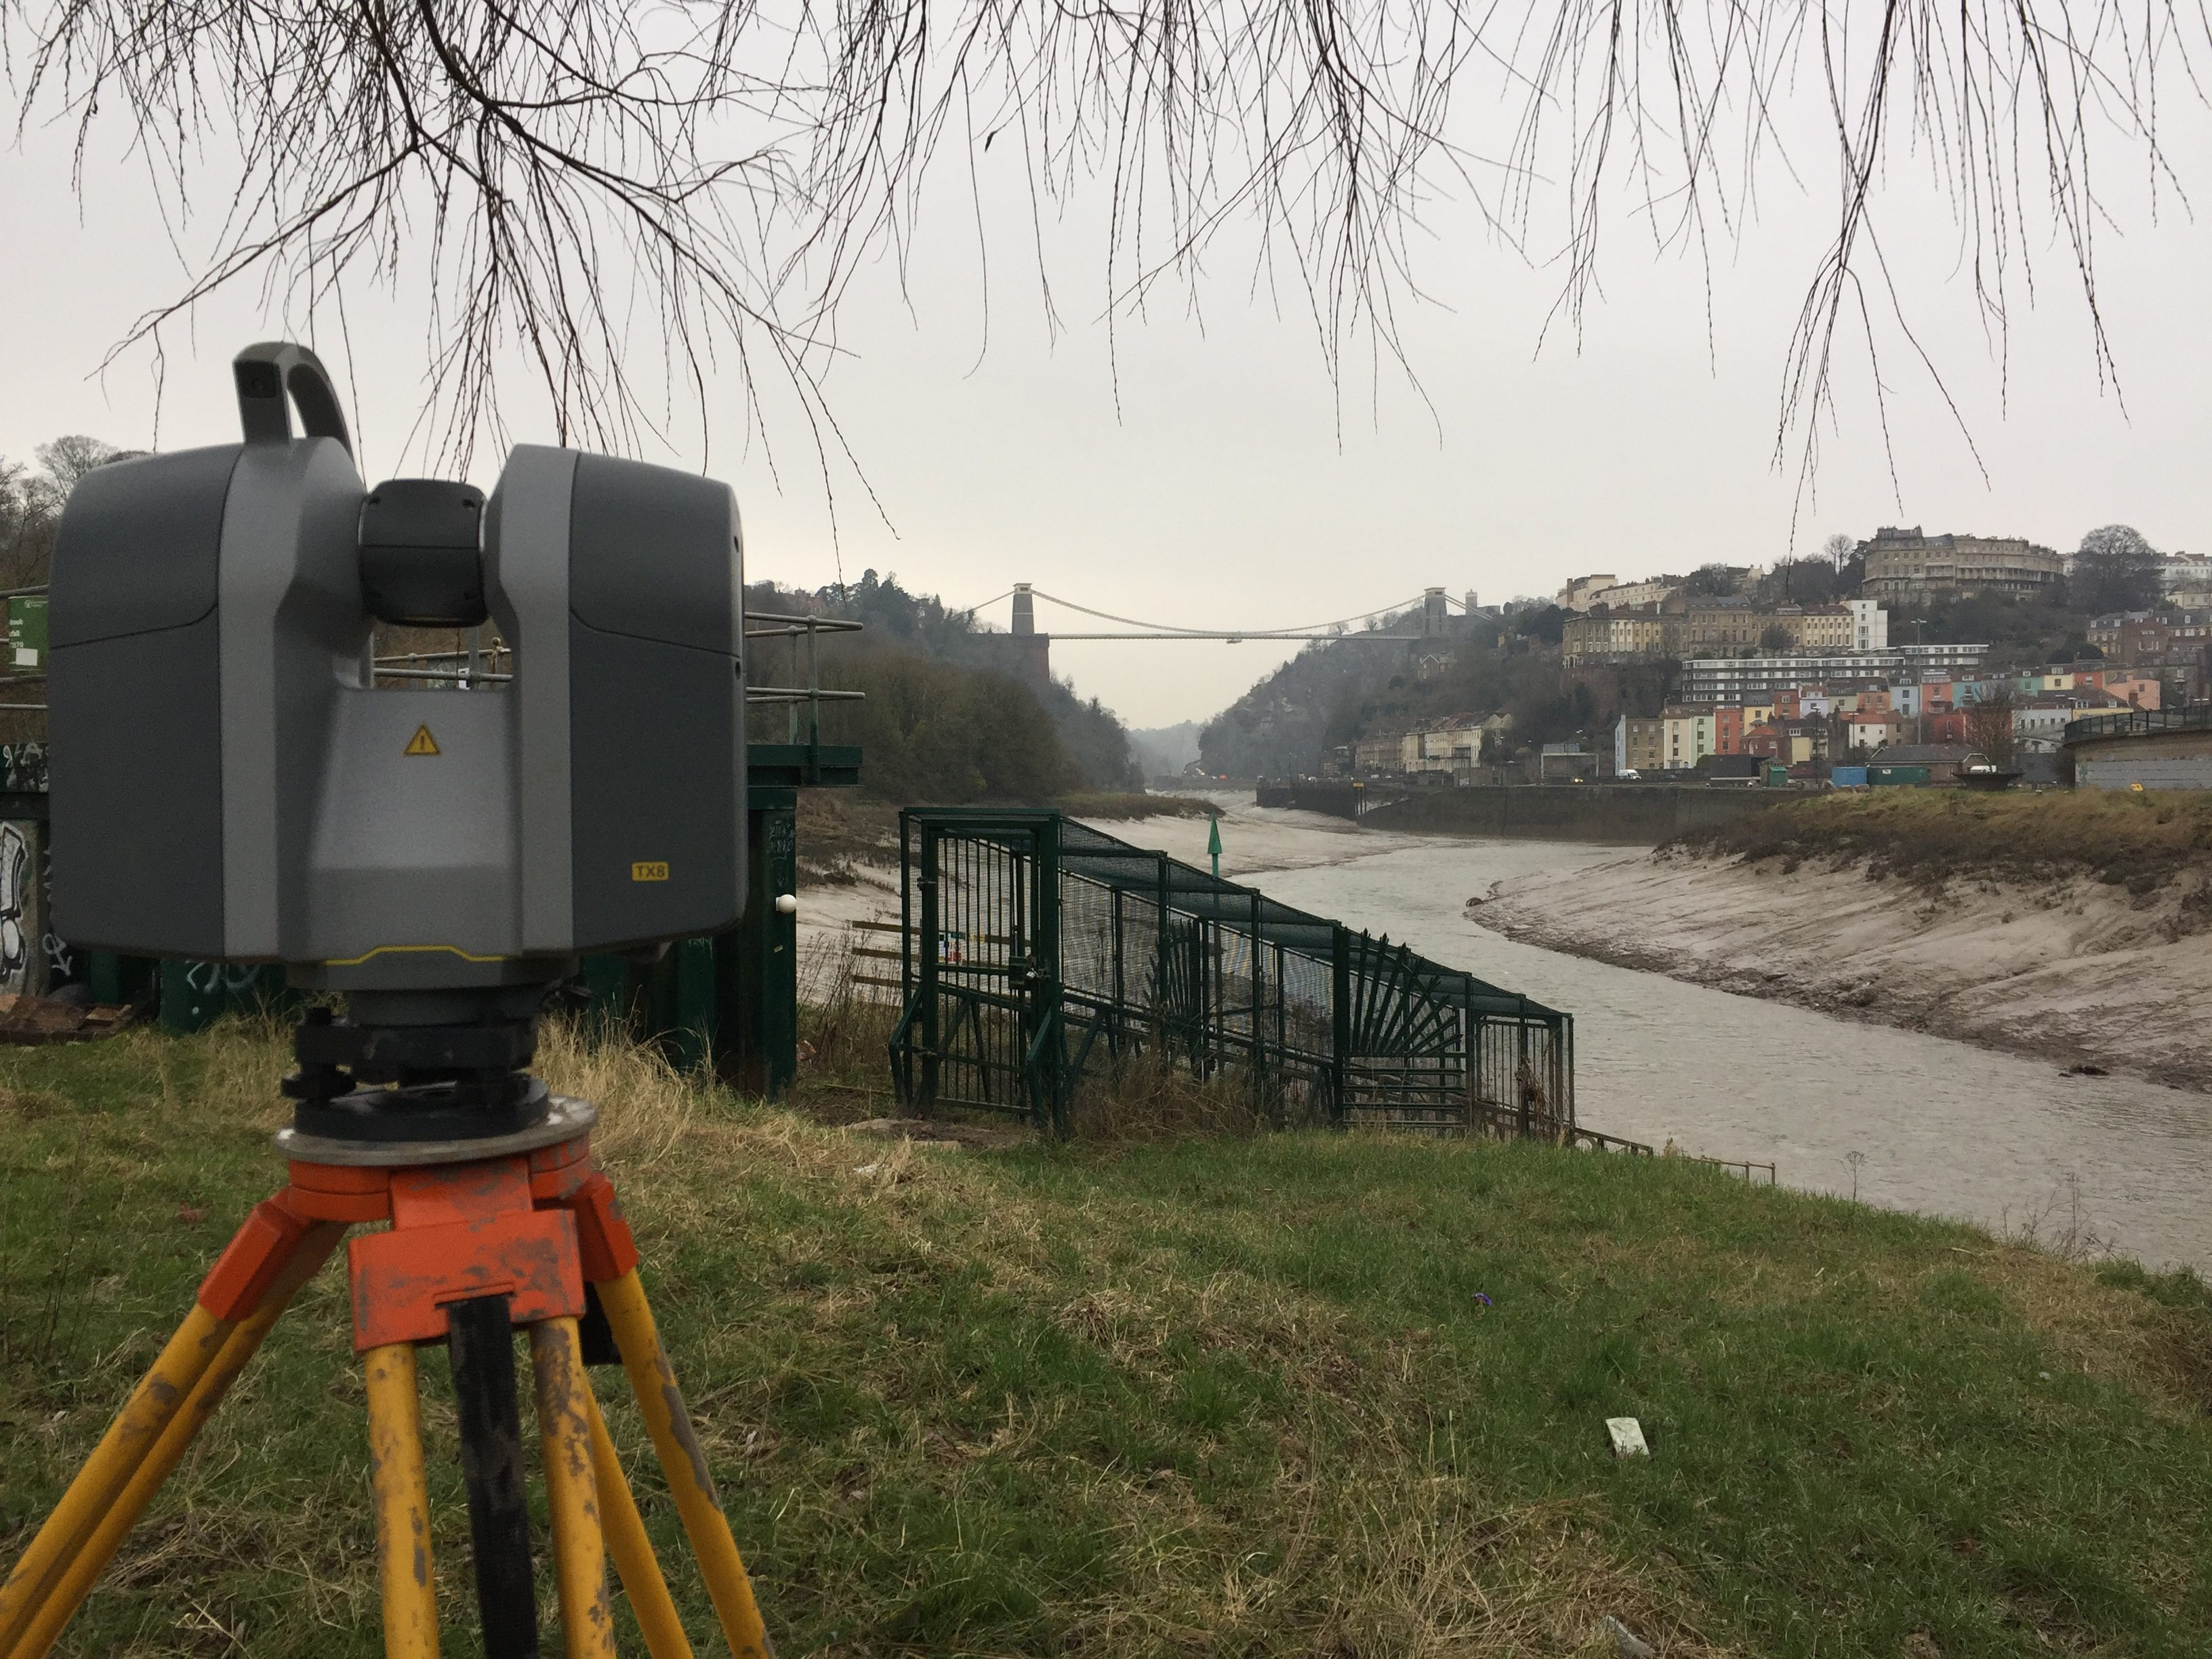 Laser Scanning with the Trimble TX8, Clifton, Bristol